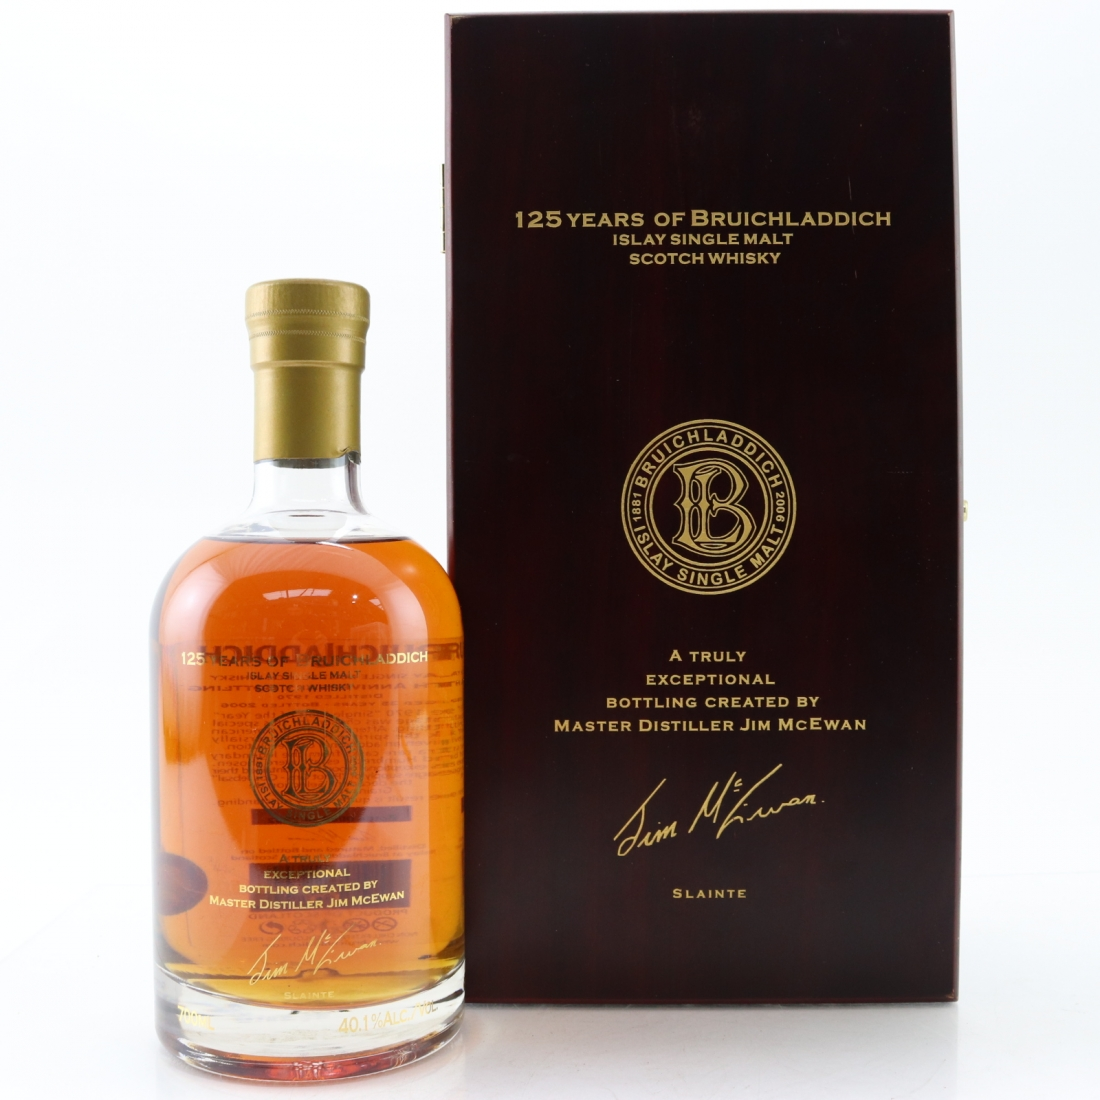 Bruichladdich 1970 35 Year Old 125th Anniversary